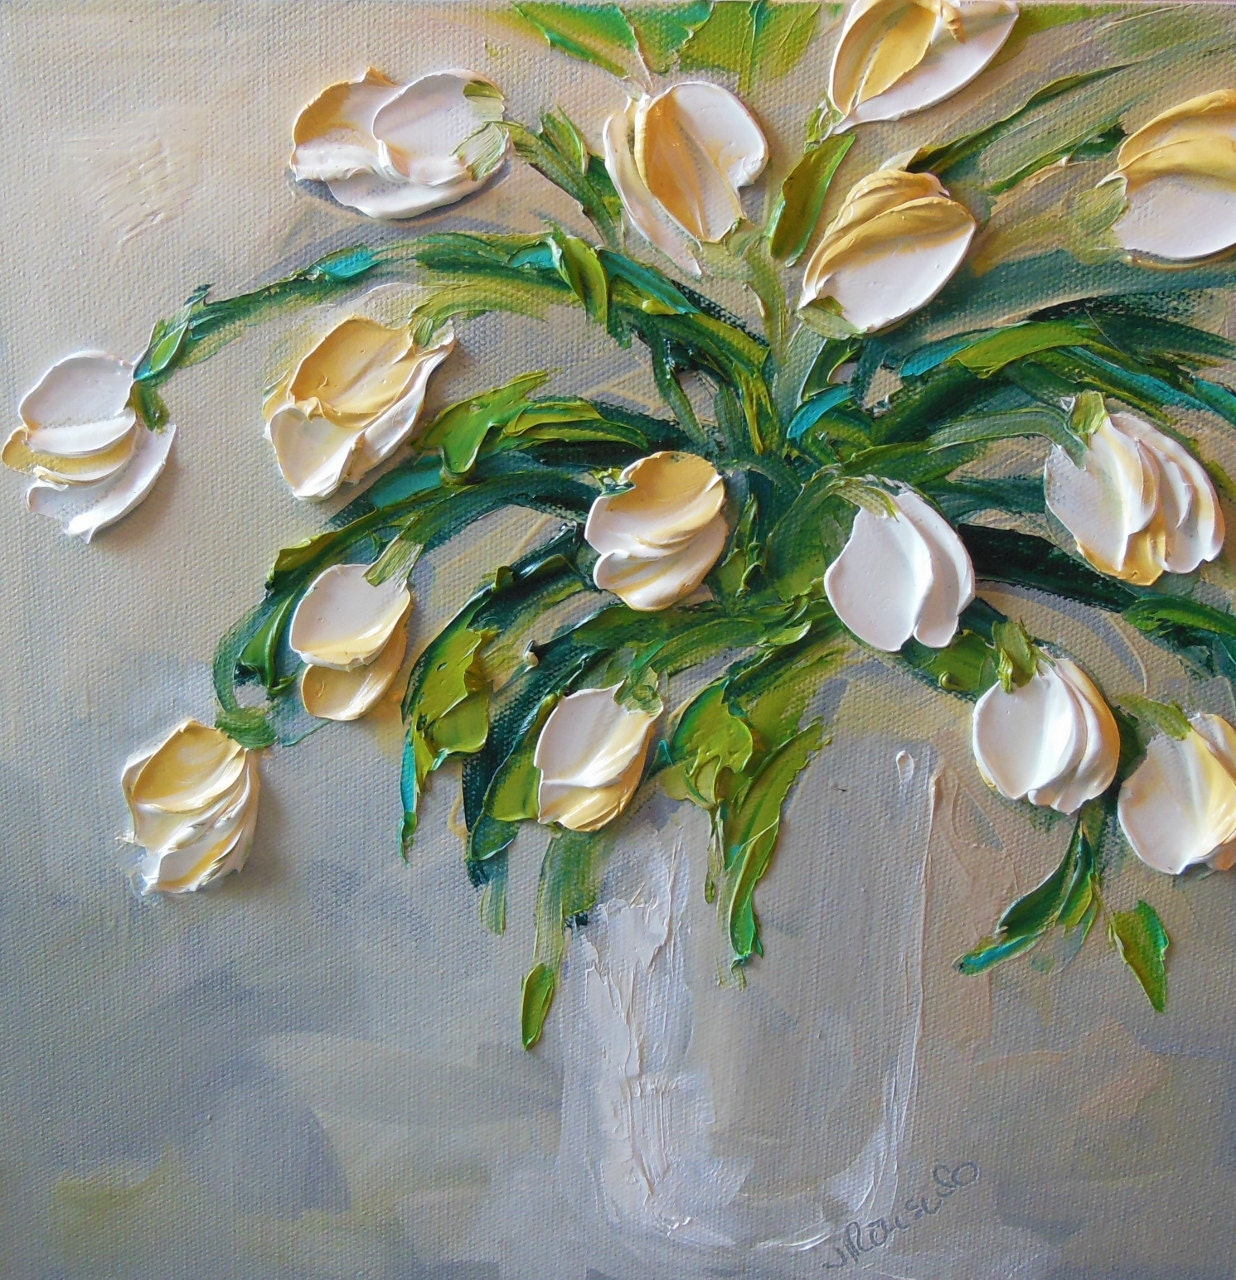 Oil Painting Art White Tulips Impasto on Canvas Jan Ironside